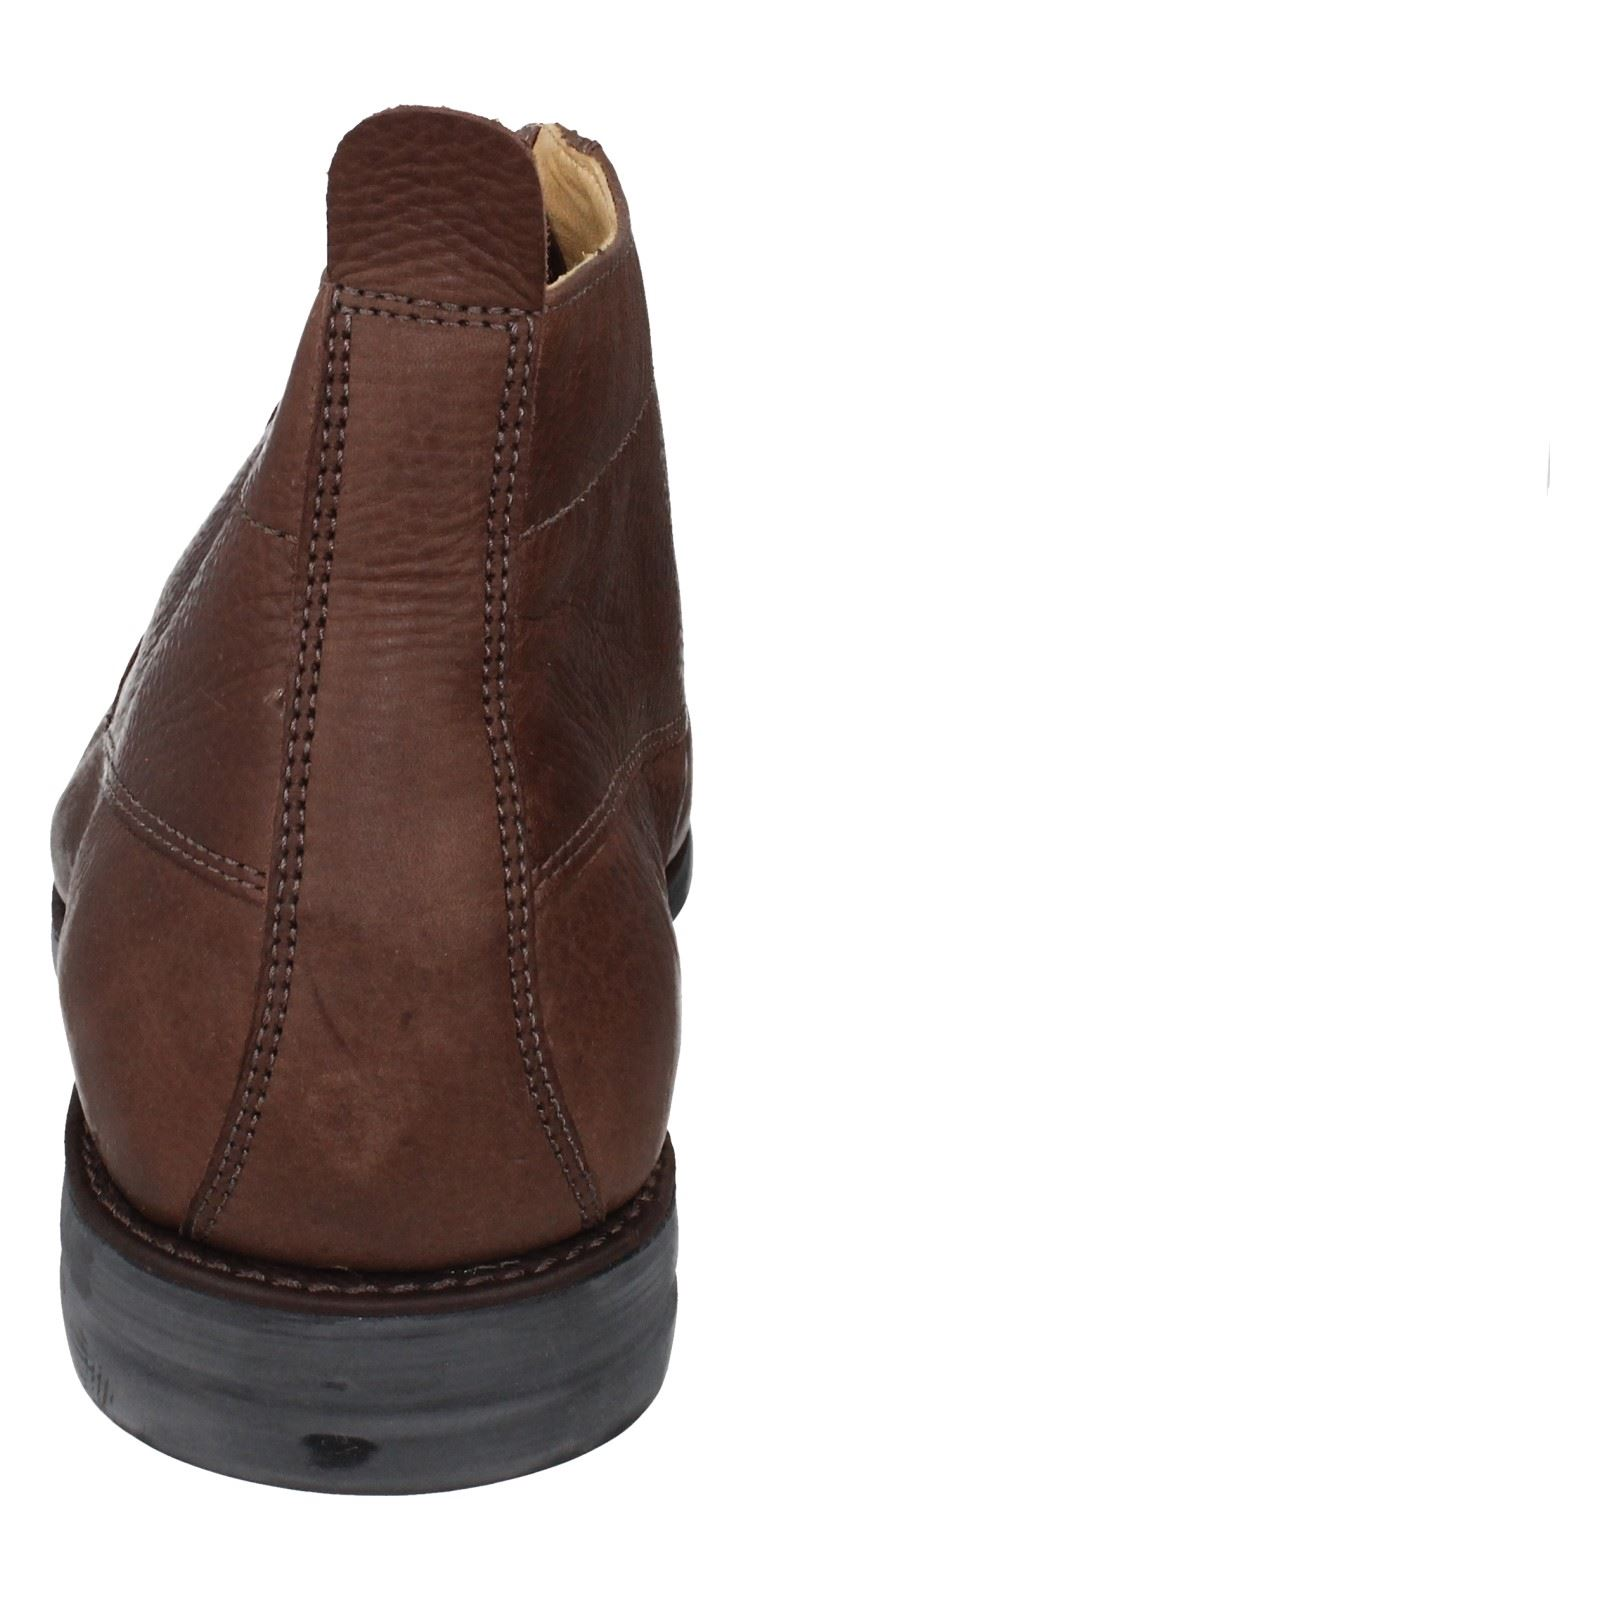 Mens Anatomic & Co Co Co Boots With Removable Insole The Style Regalo 92eaa6